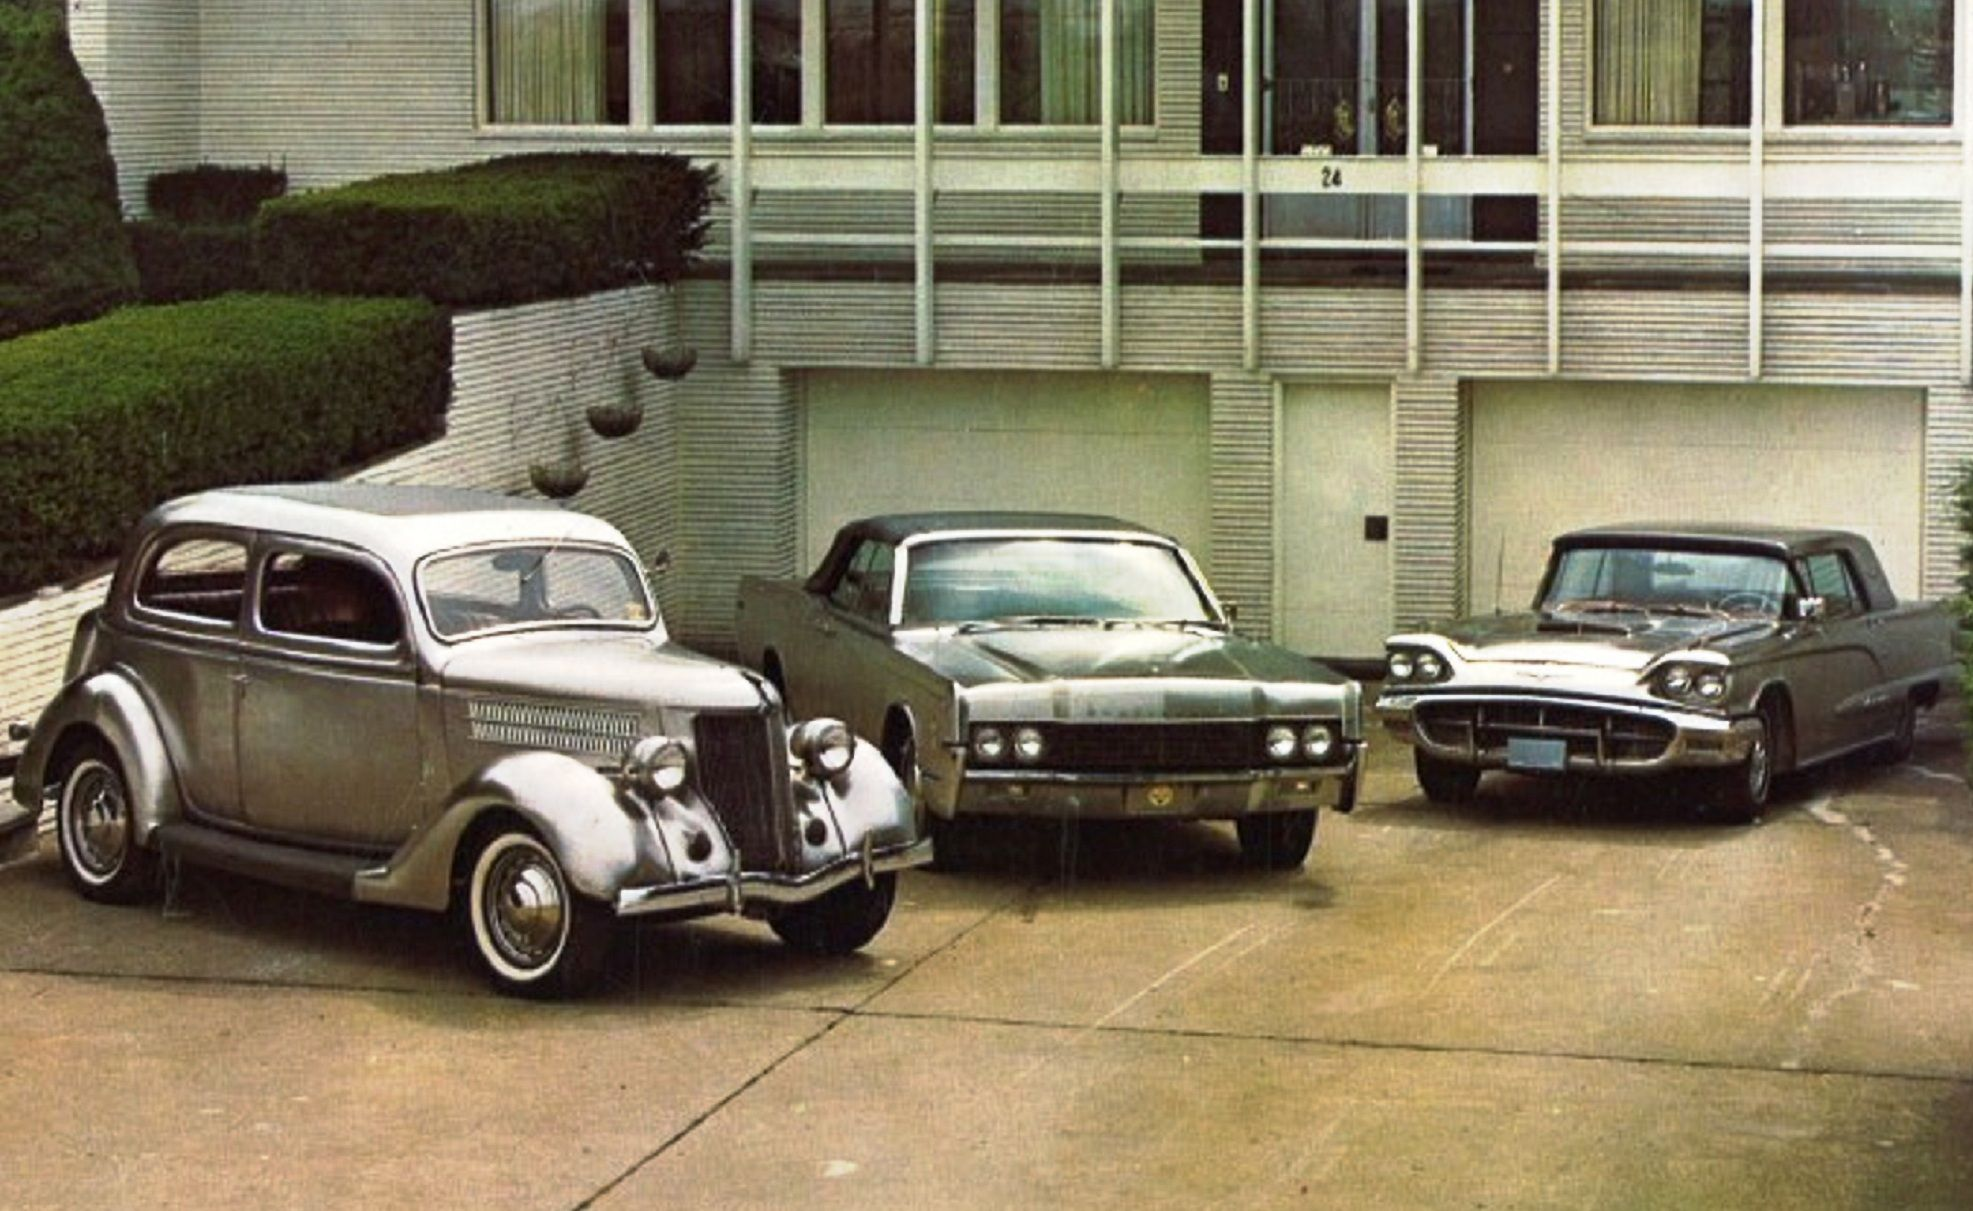 The First Stainless Steel Car